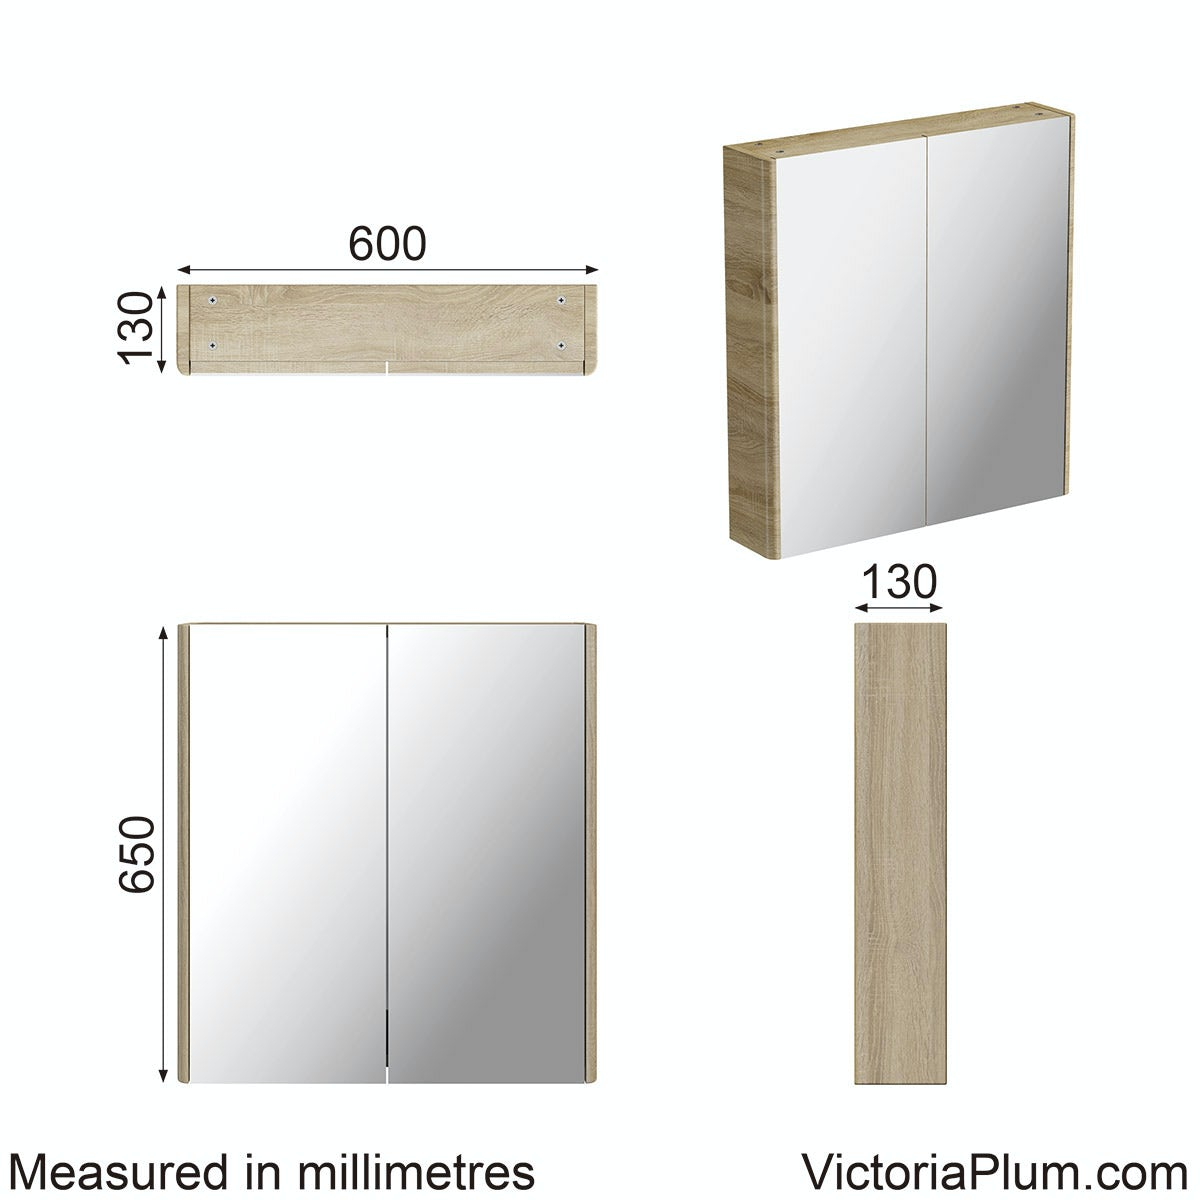 Dimensions for Mode Sherwood oak curved mirror cabinet 600mm